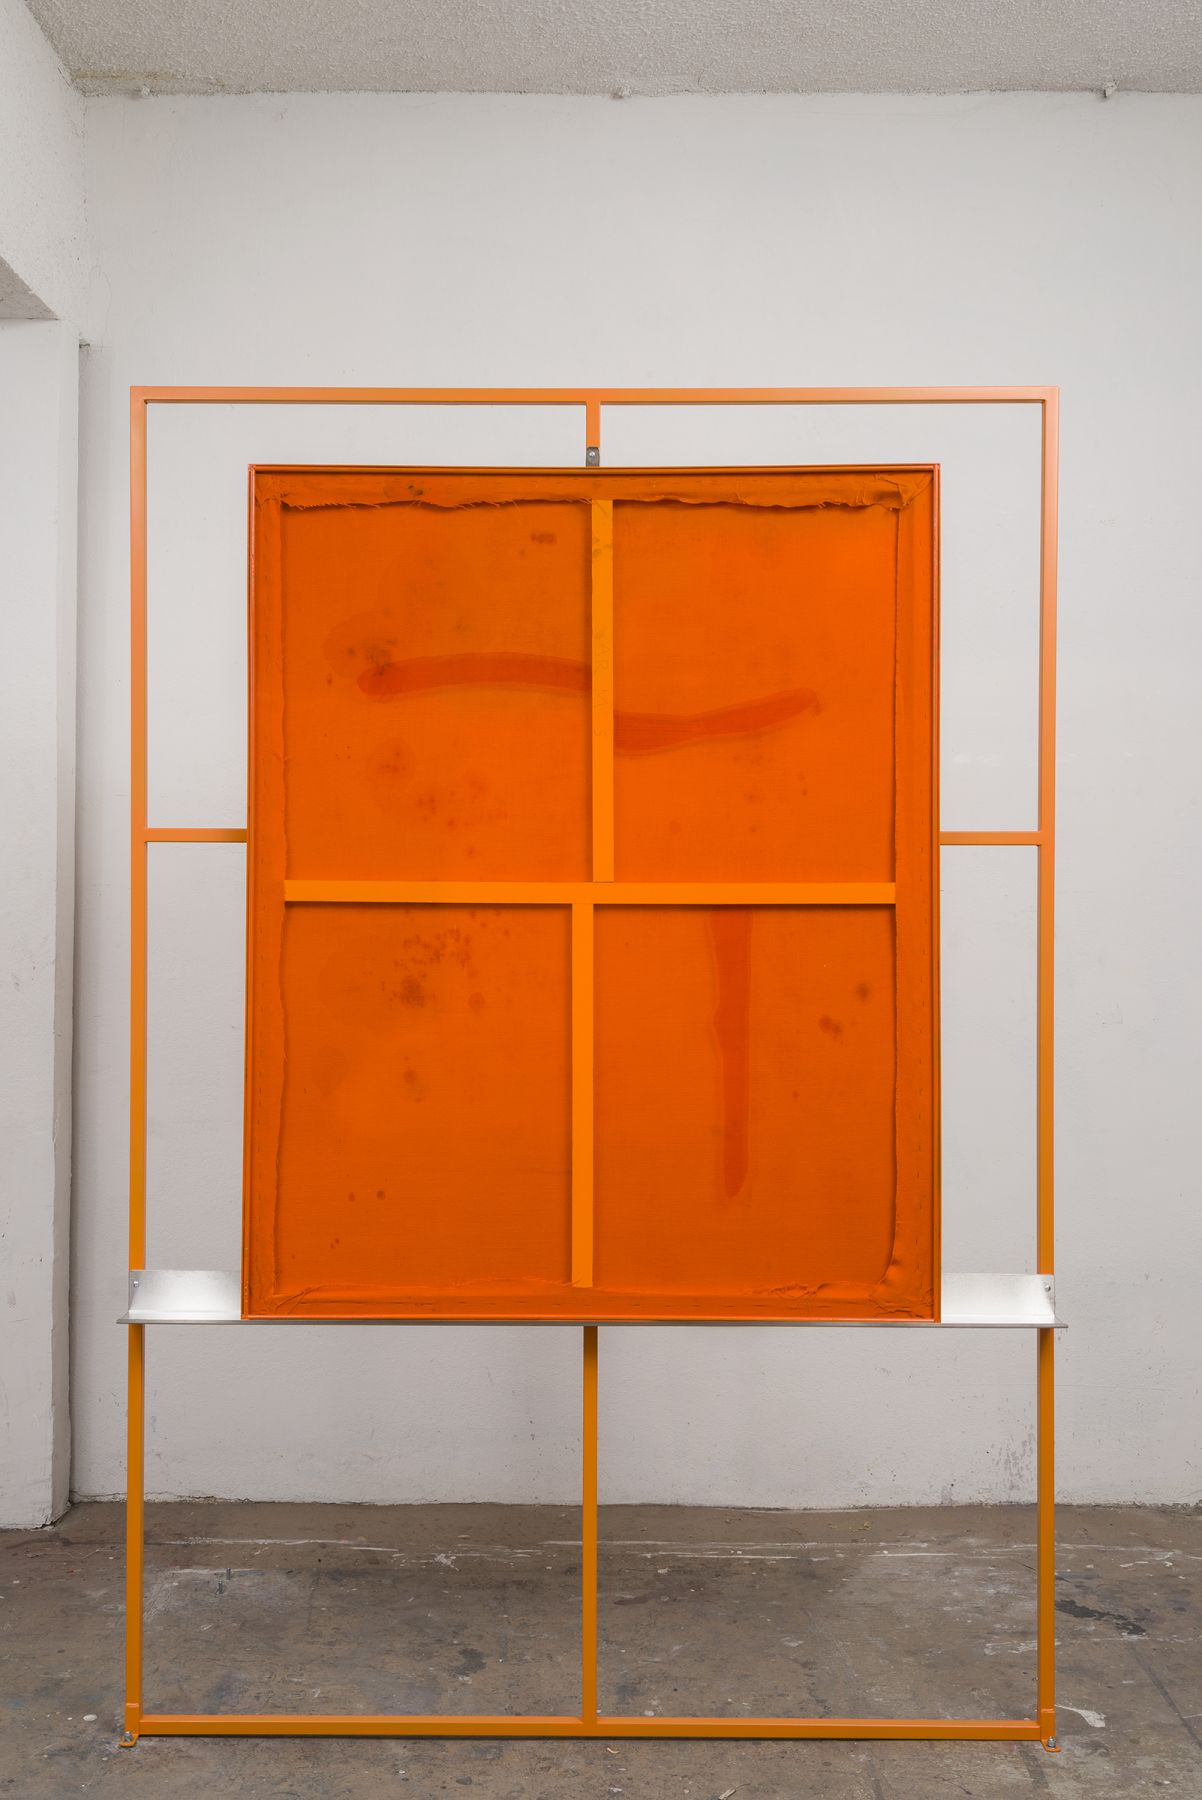 the other side of the sculptural artwork by dashiell manley in a bright orange